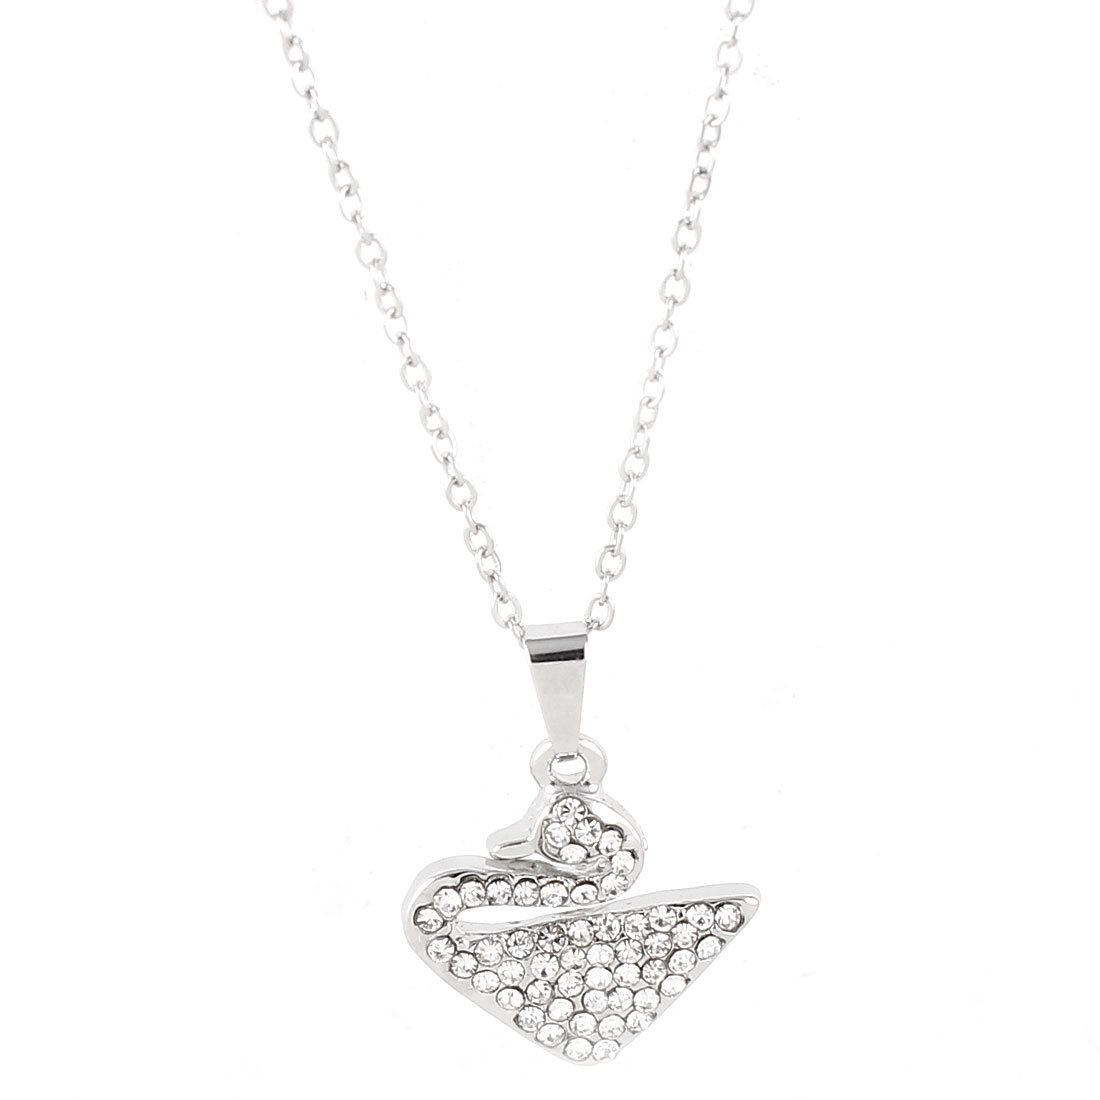 Lady Silver Tone Chain Link Swan Pendant Rhinestone Detailing Necklace